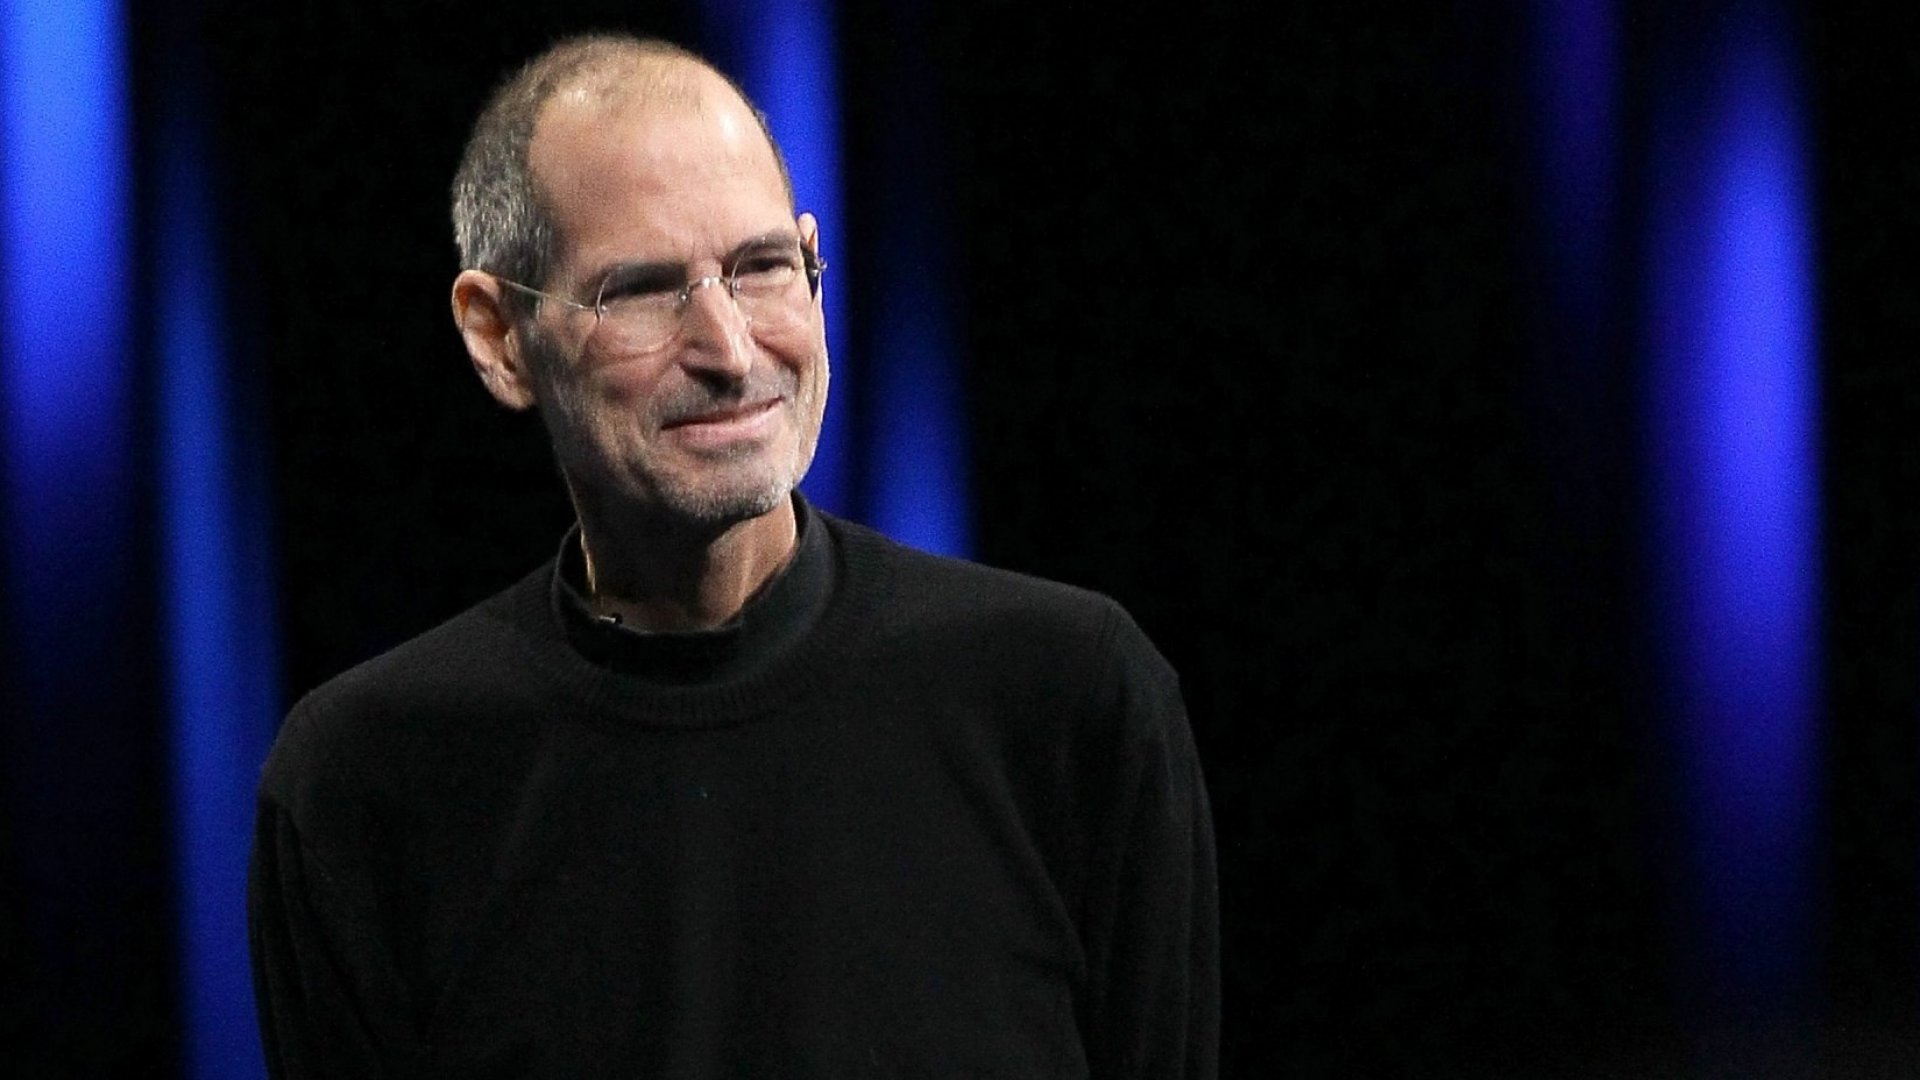 Steve Jobs delivers the keynote address at the 2011 Apple World Wide Developers Conference on June 6, 2011 in San Francisco.